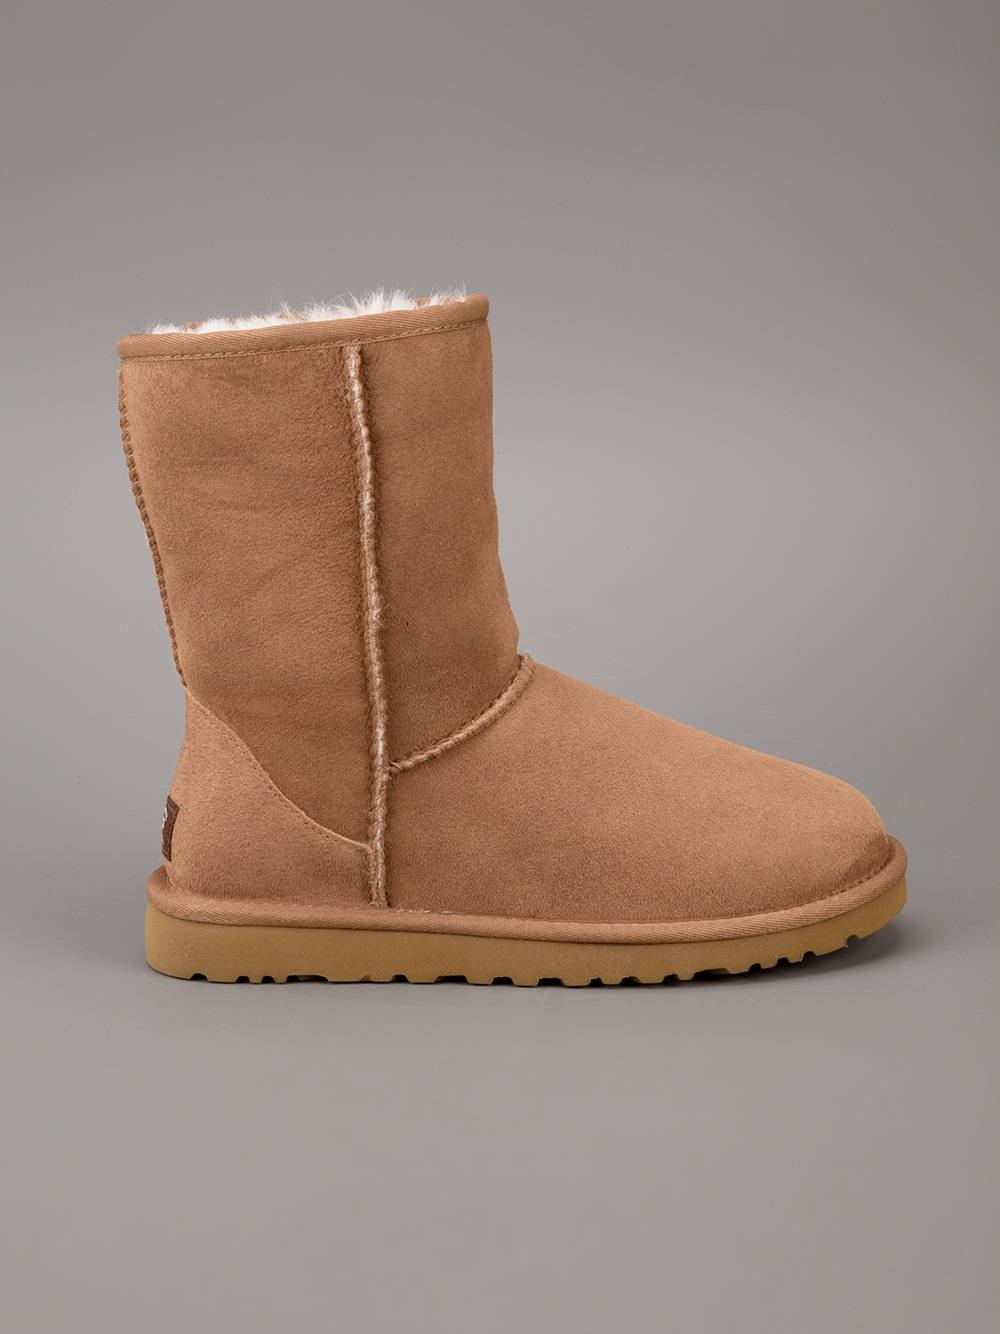 UGG Classic Short Boots in Brown